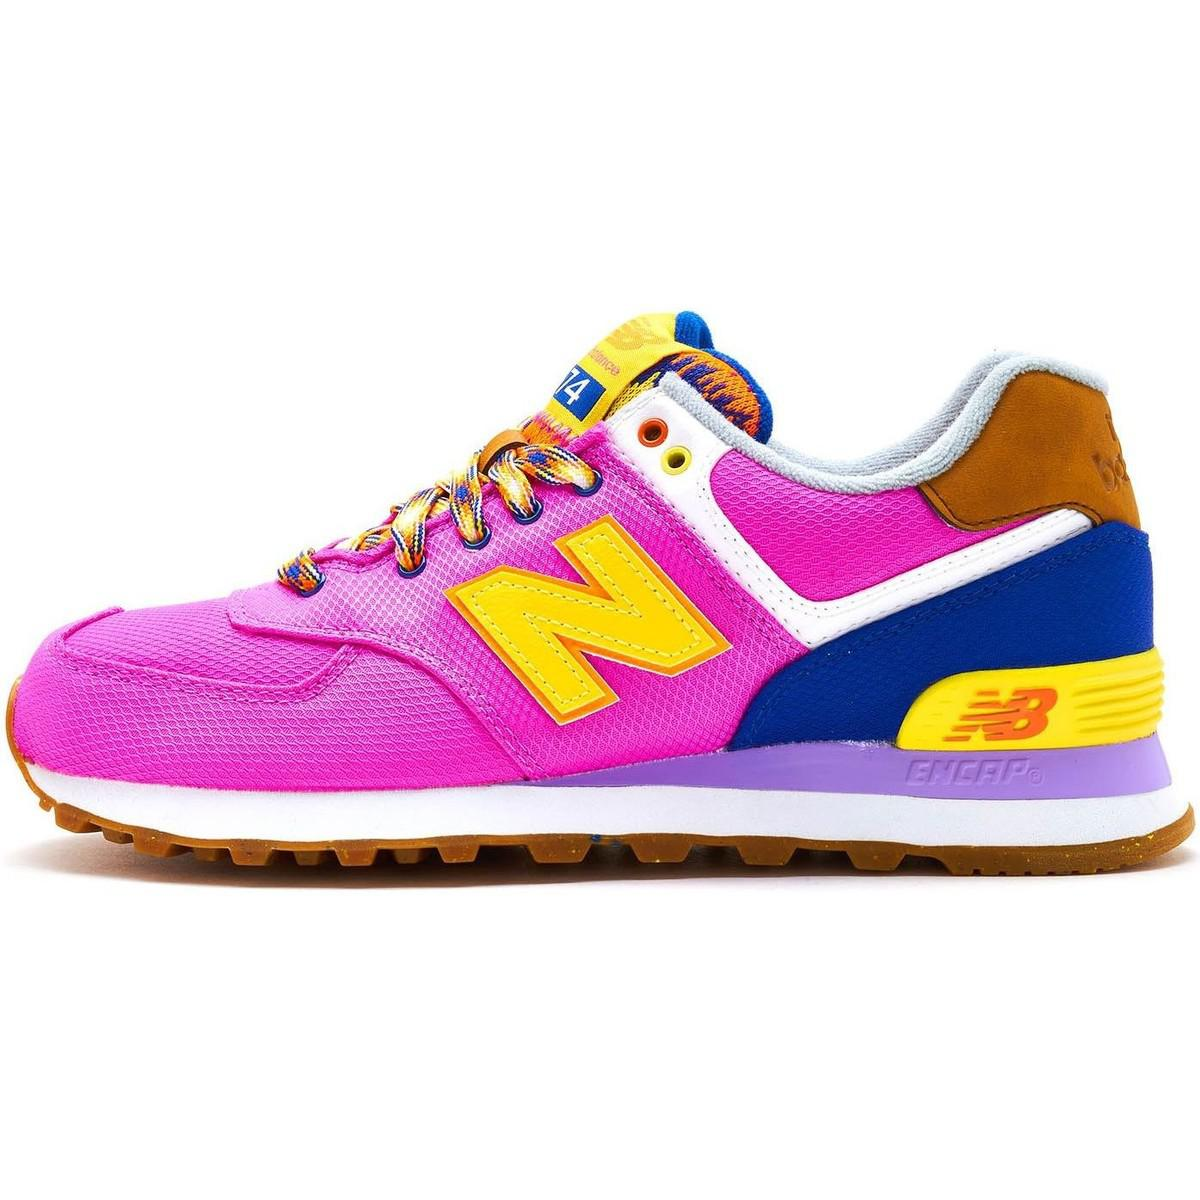 best service f149f 3897b New Balance 574 Suede Retro Women Trainers In Pink Yellow ...